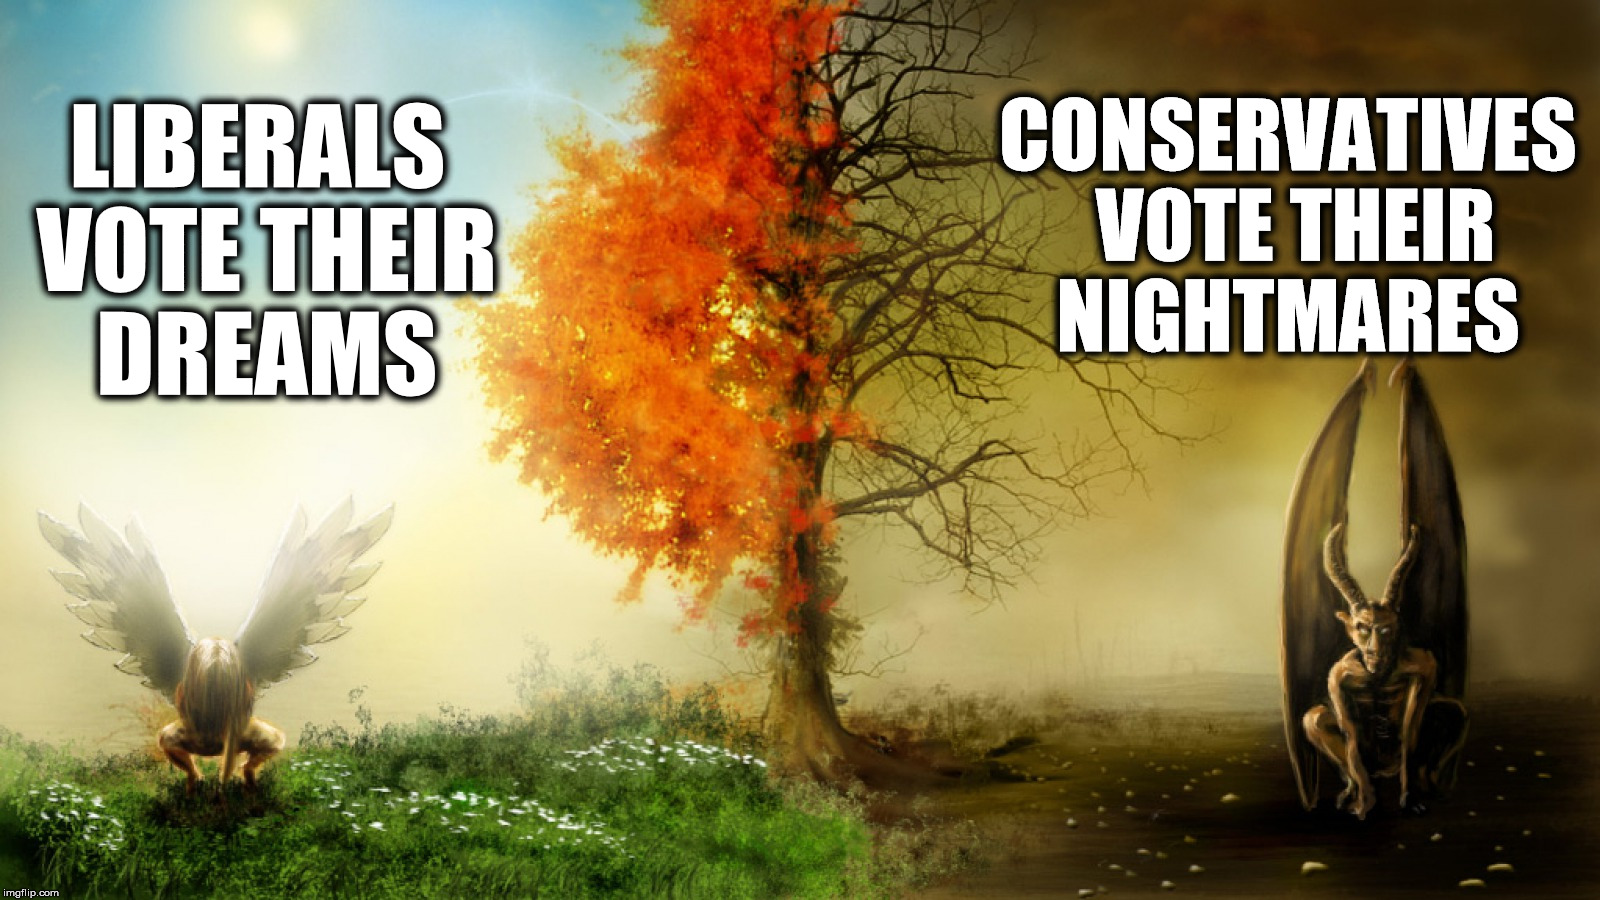 Liberal vs Conservative | LIBERALS VOTE THEIR DREAMS CONSERVATIVES VOTE THEIR NIGHTMARES | image tagged in liberal vs conservative | made w/ Imgflip meme maker